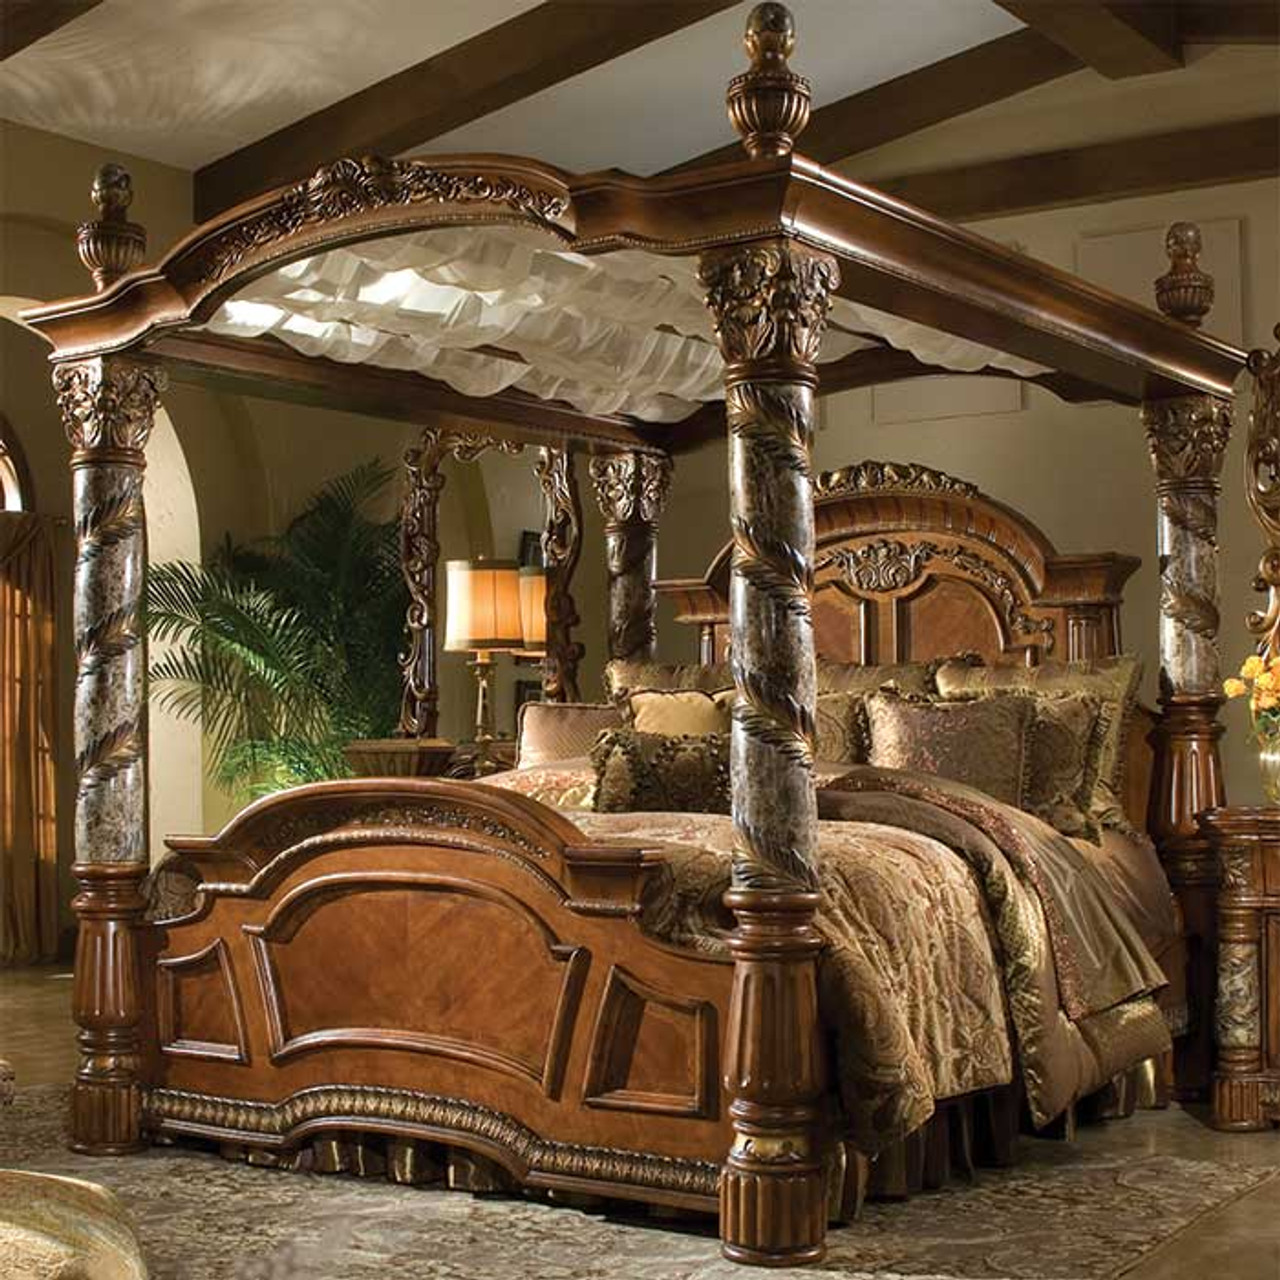 Renaissance King Canopy Bed Magnolia Hall